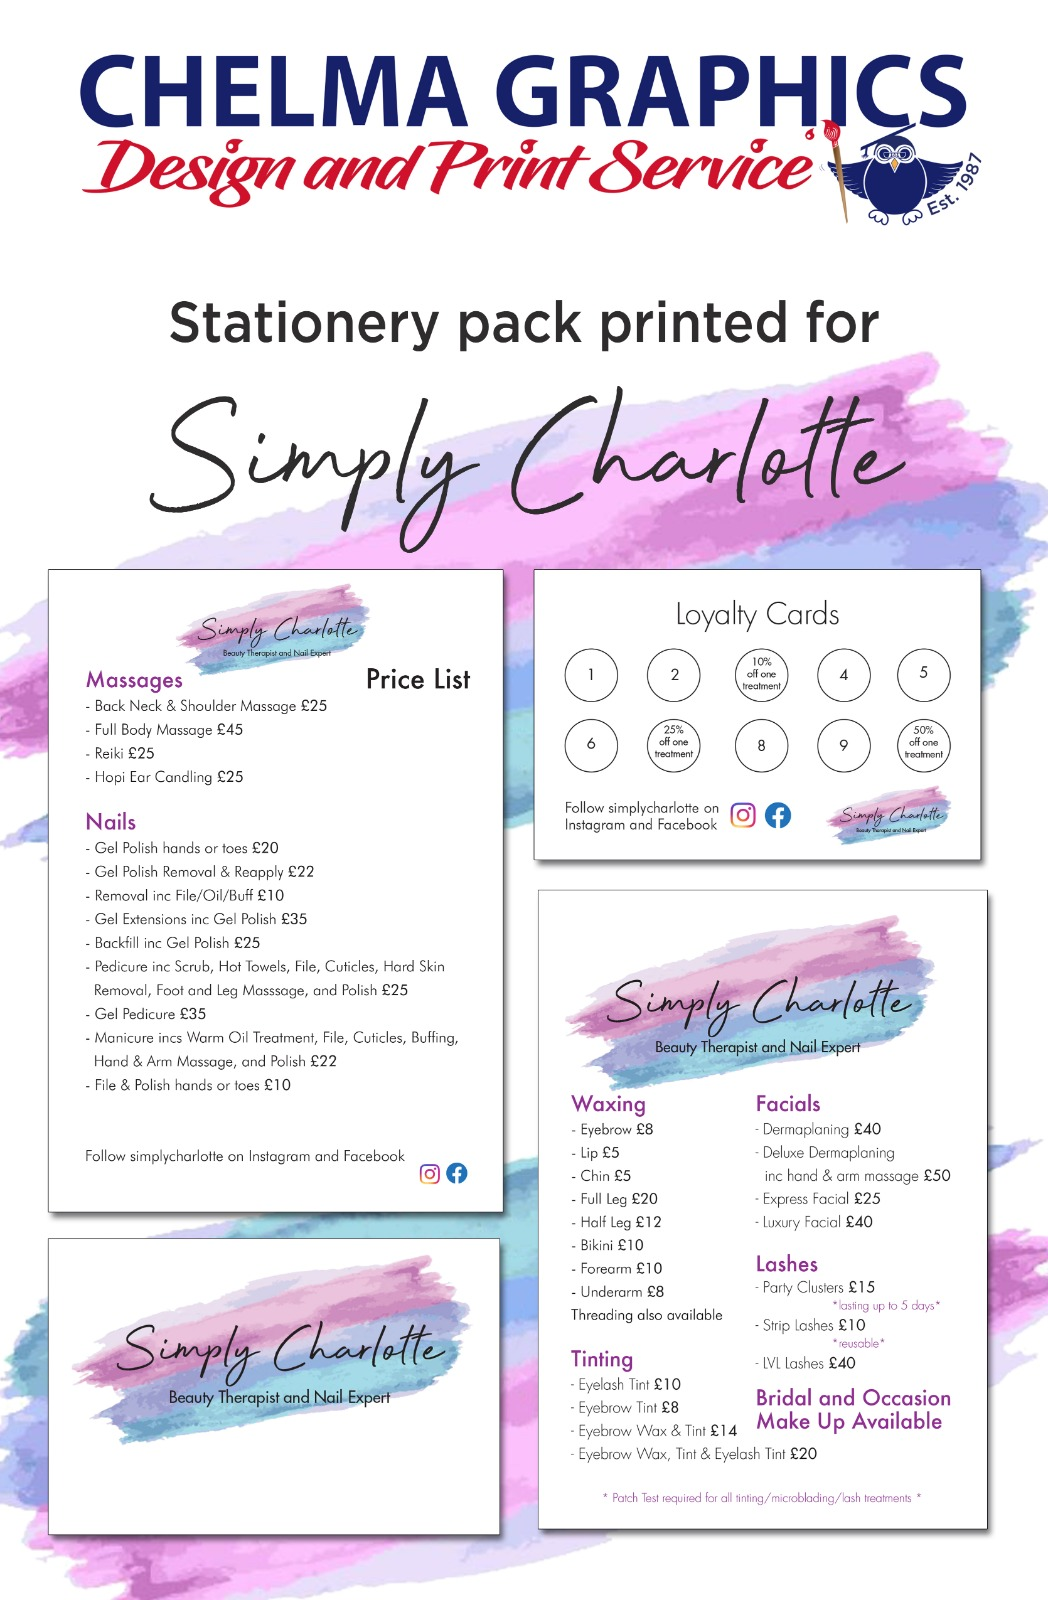 Here is an example of a Stationery Pack we created and printed for Simply Charlotte